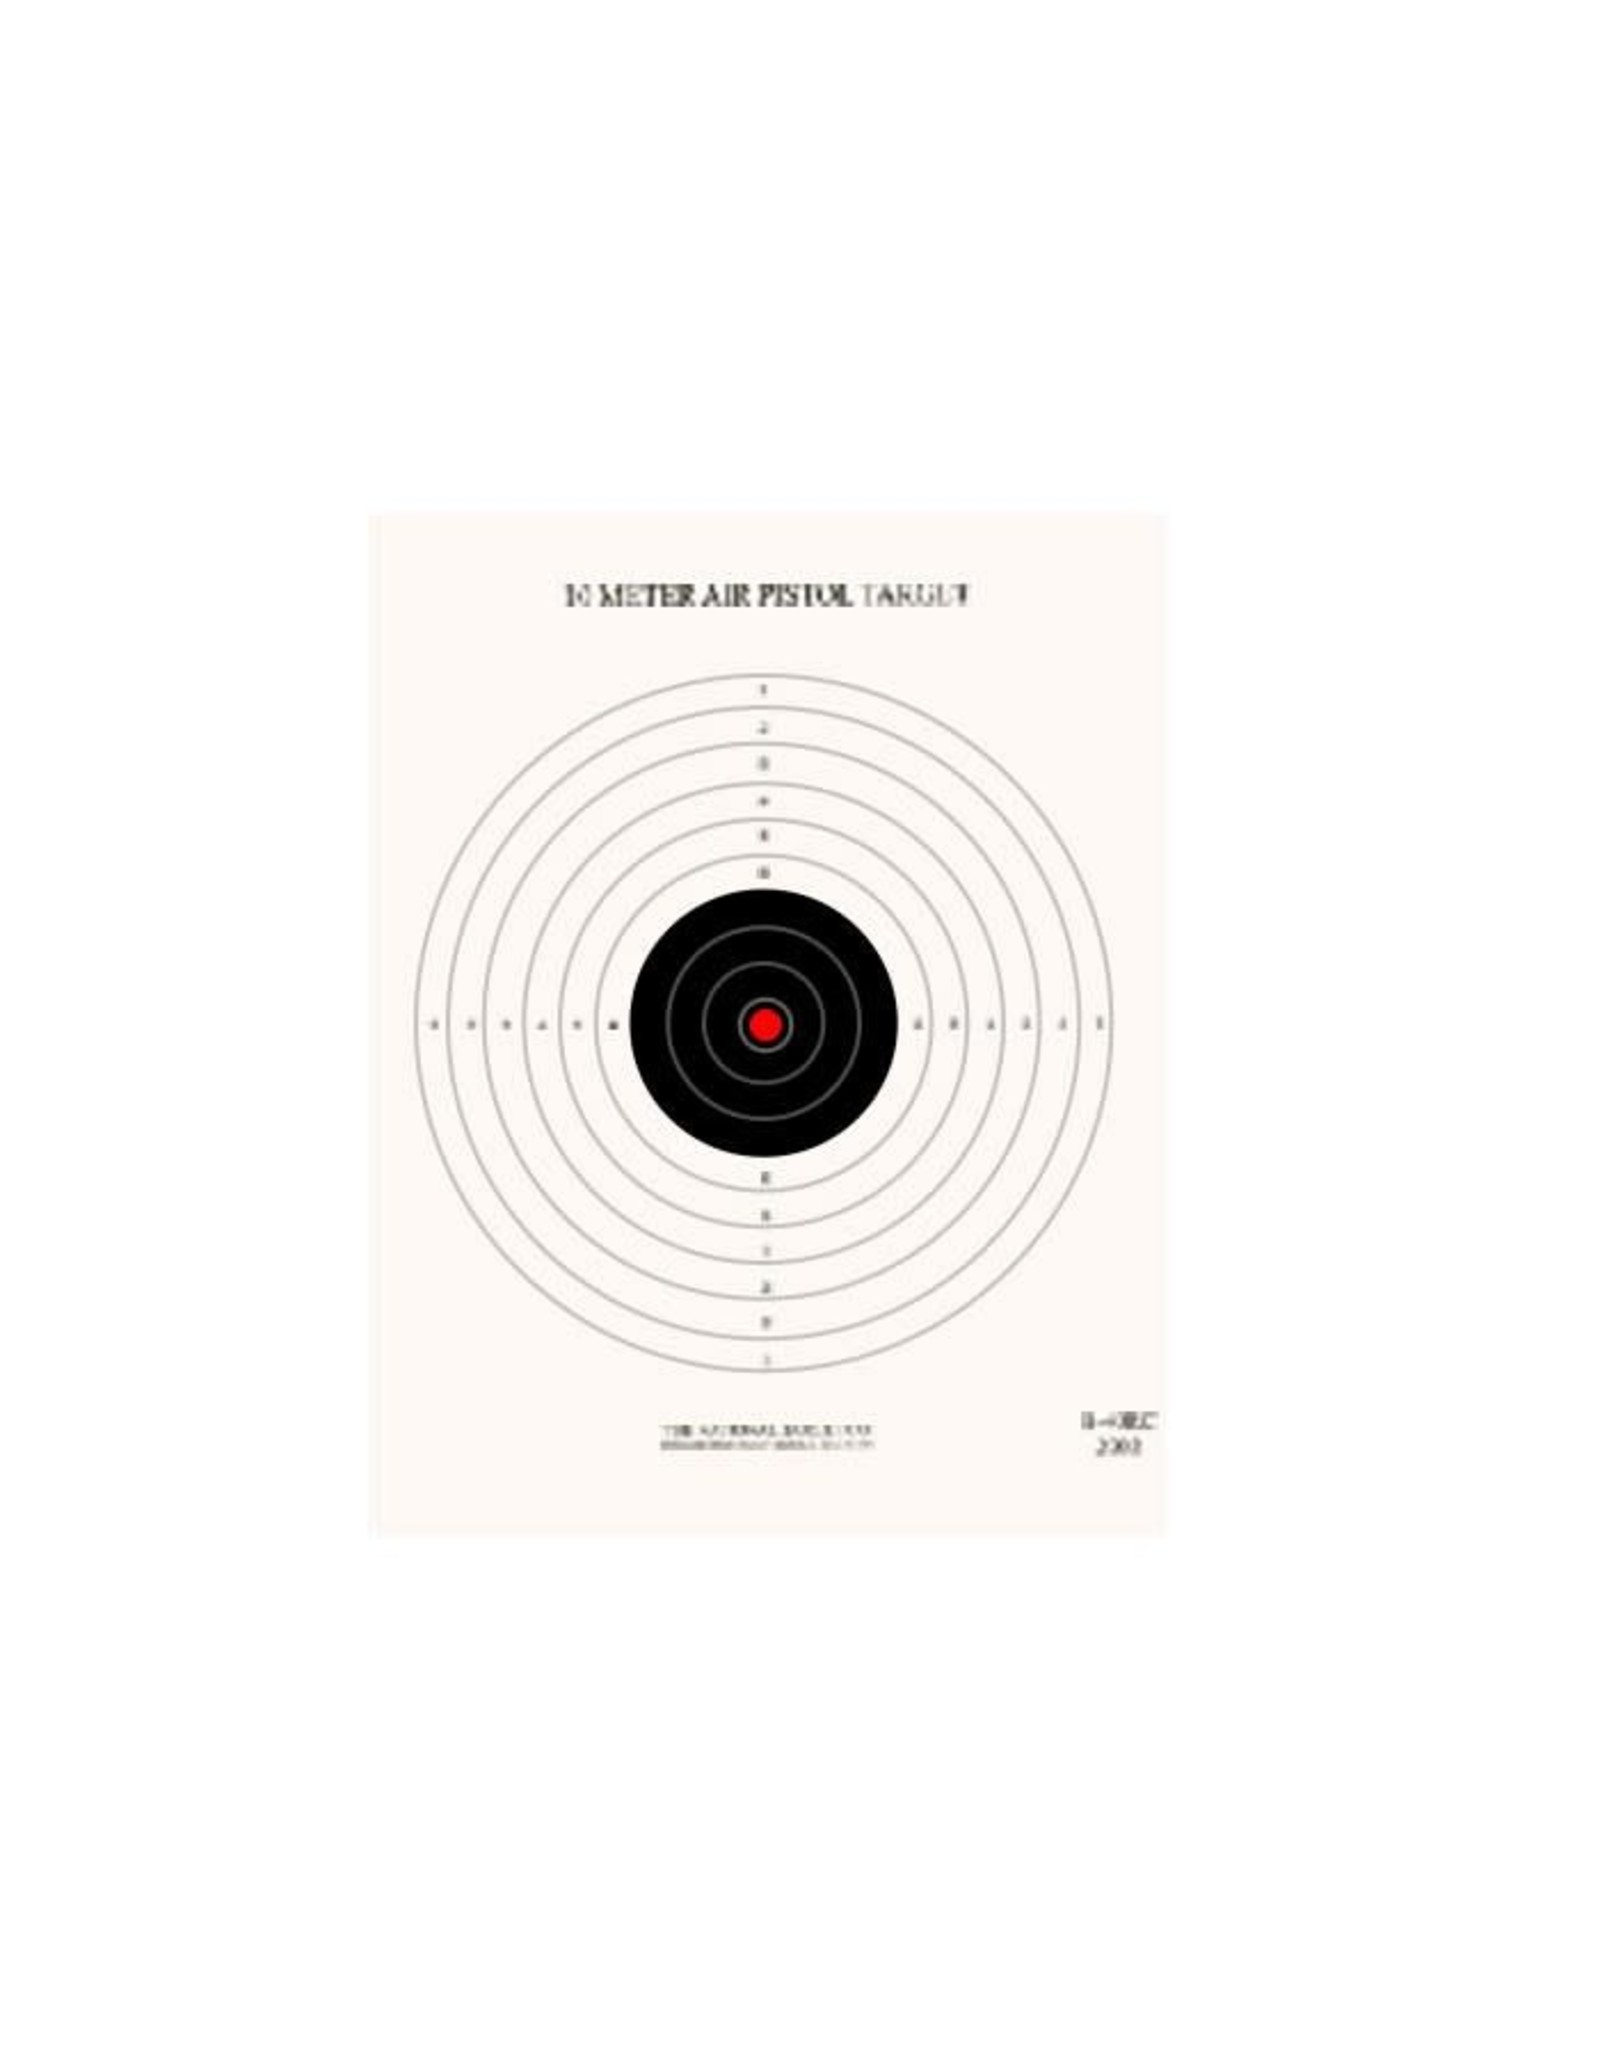 10 Meter (33') Single Bull Red Center NRA Air Pistol Target 100CT